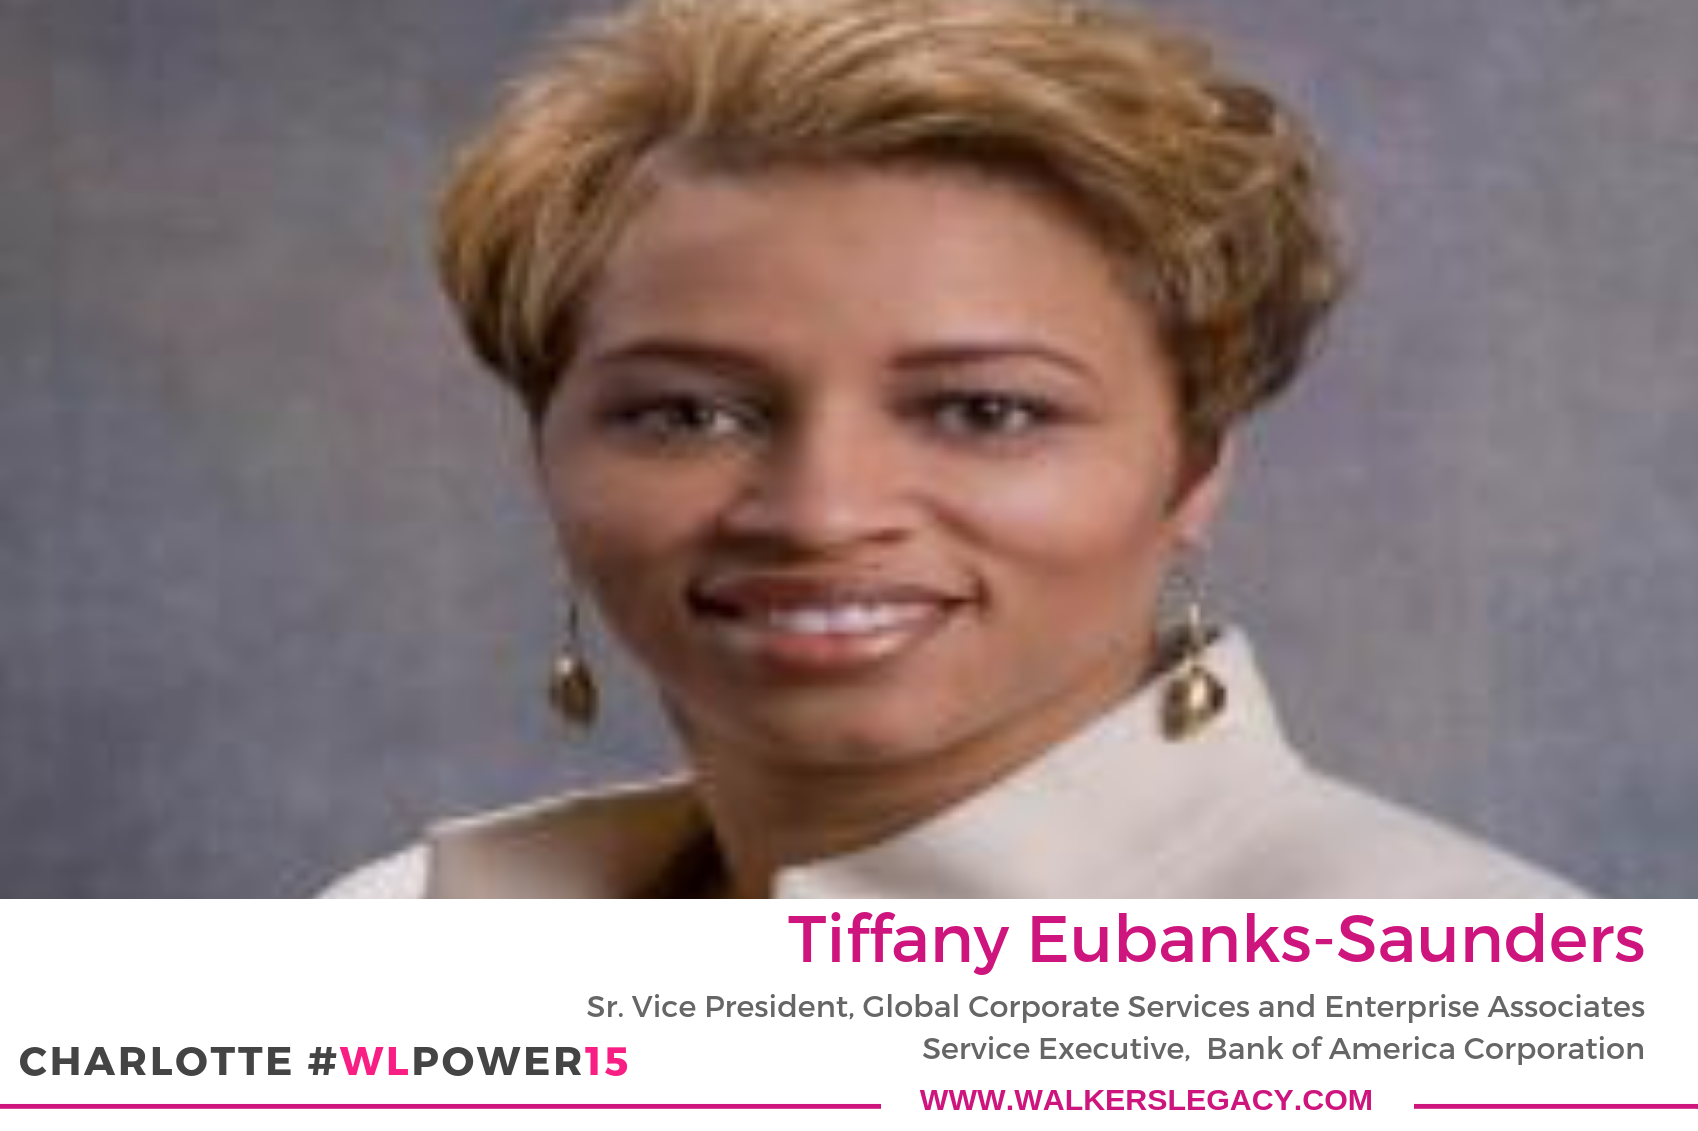 Tiffany Eubanks-Sanders